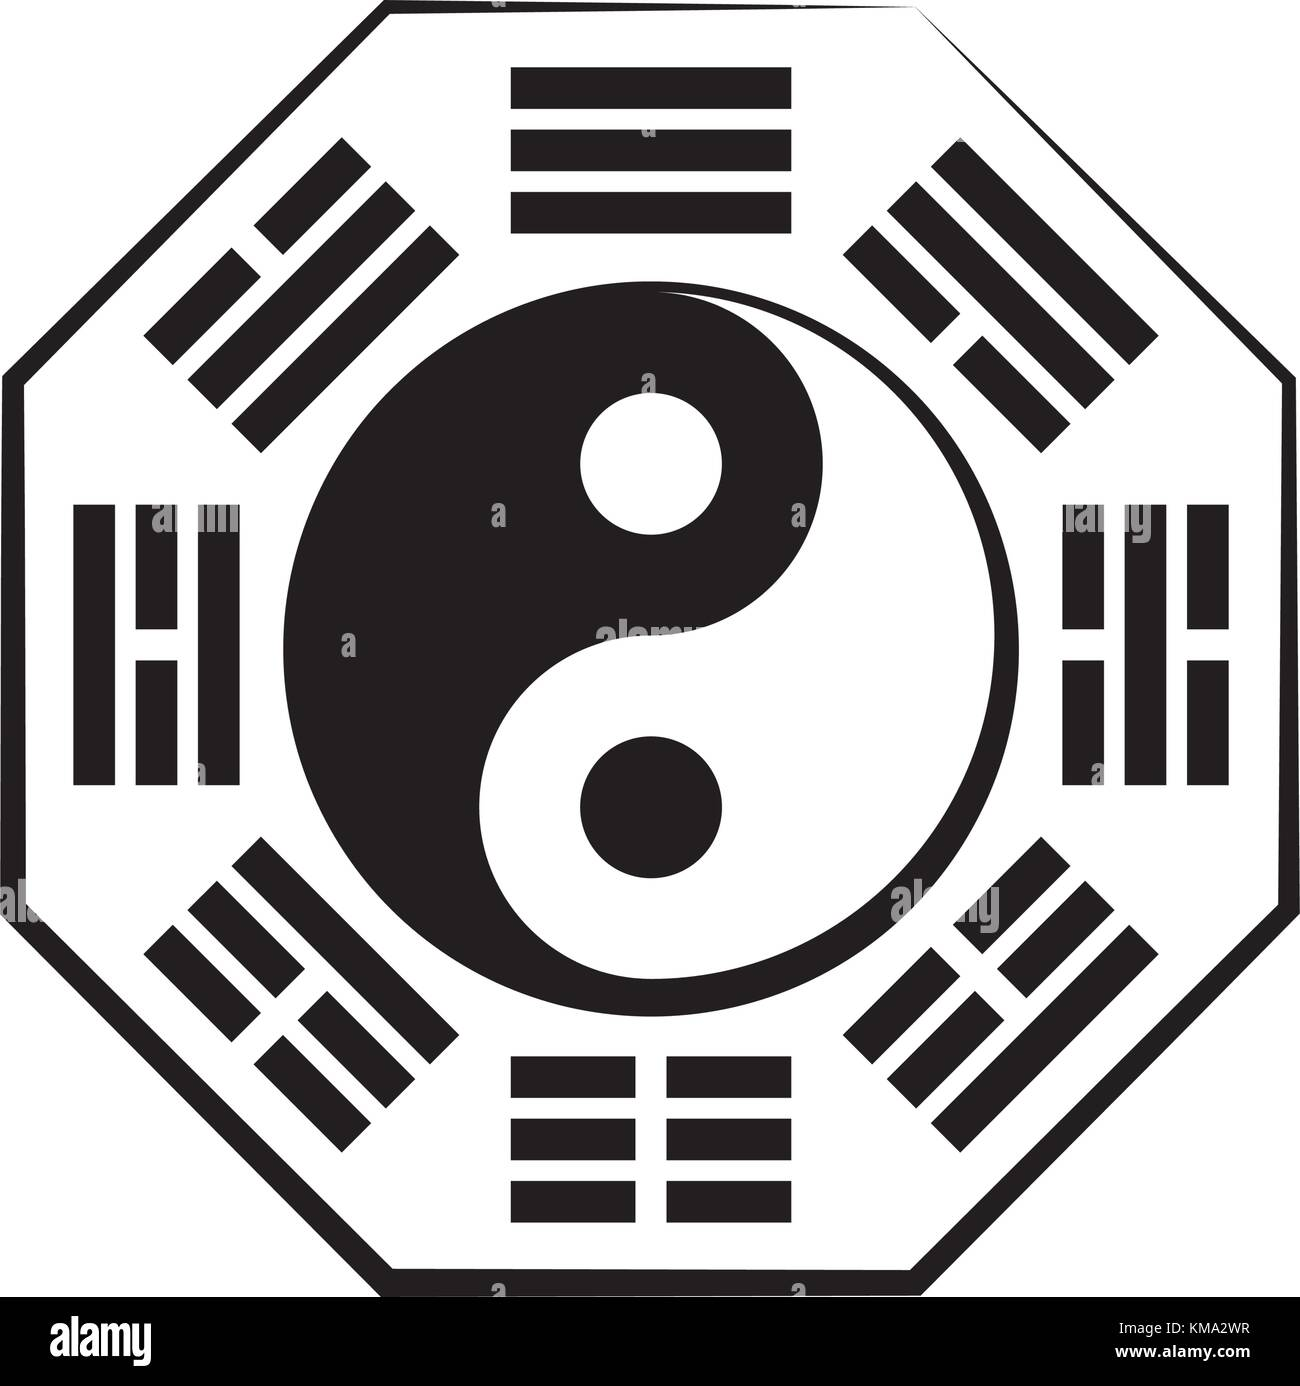 Cosmic symbol stock photos cosmic symbol stock images alamy chinese cosmic symbol of the duality and the biocorpaavc Images